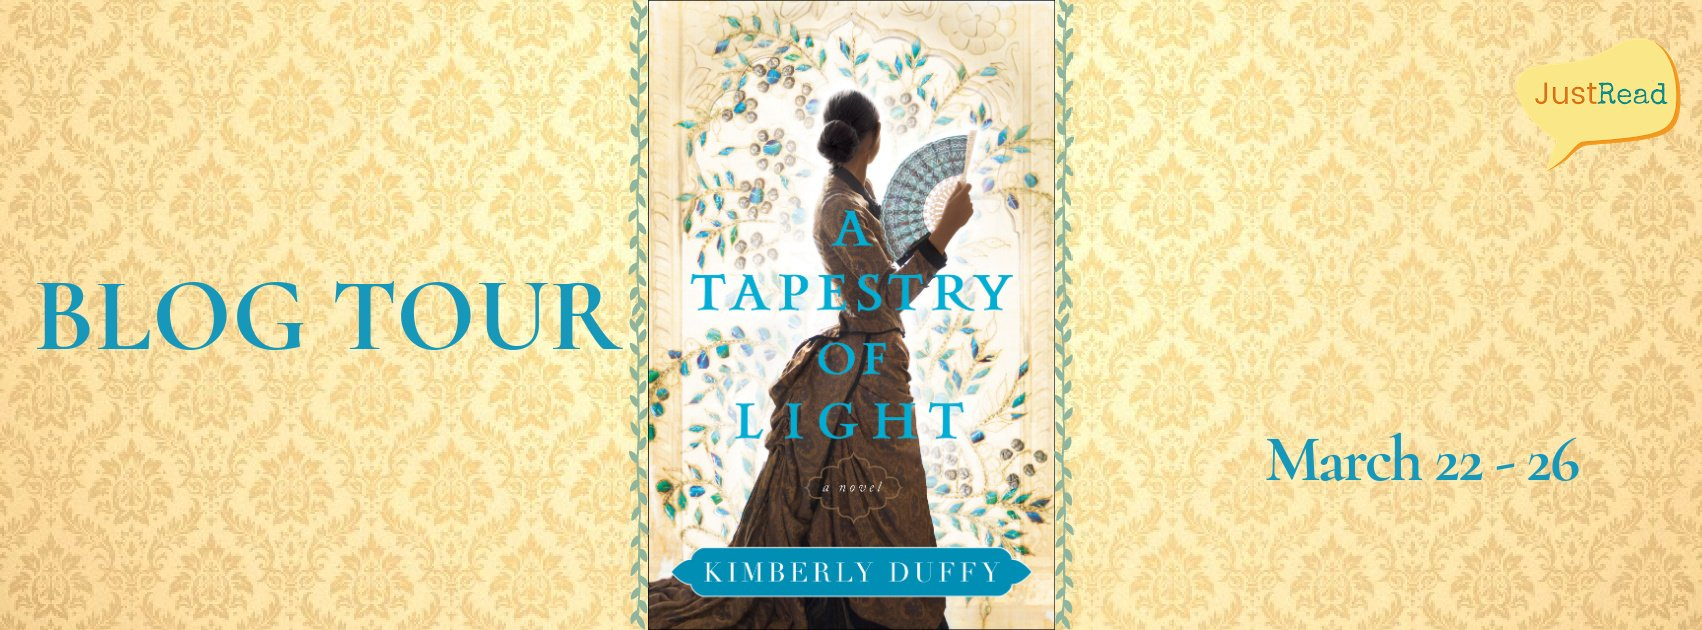 A Tapestry of Light JustRead Blog Tour